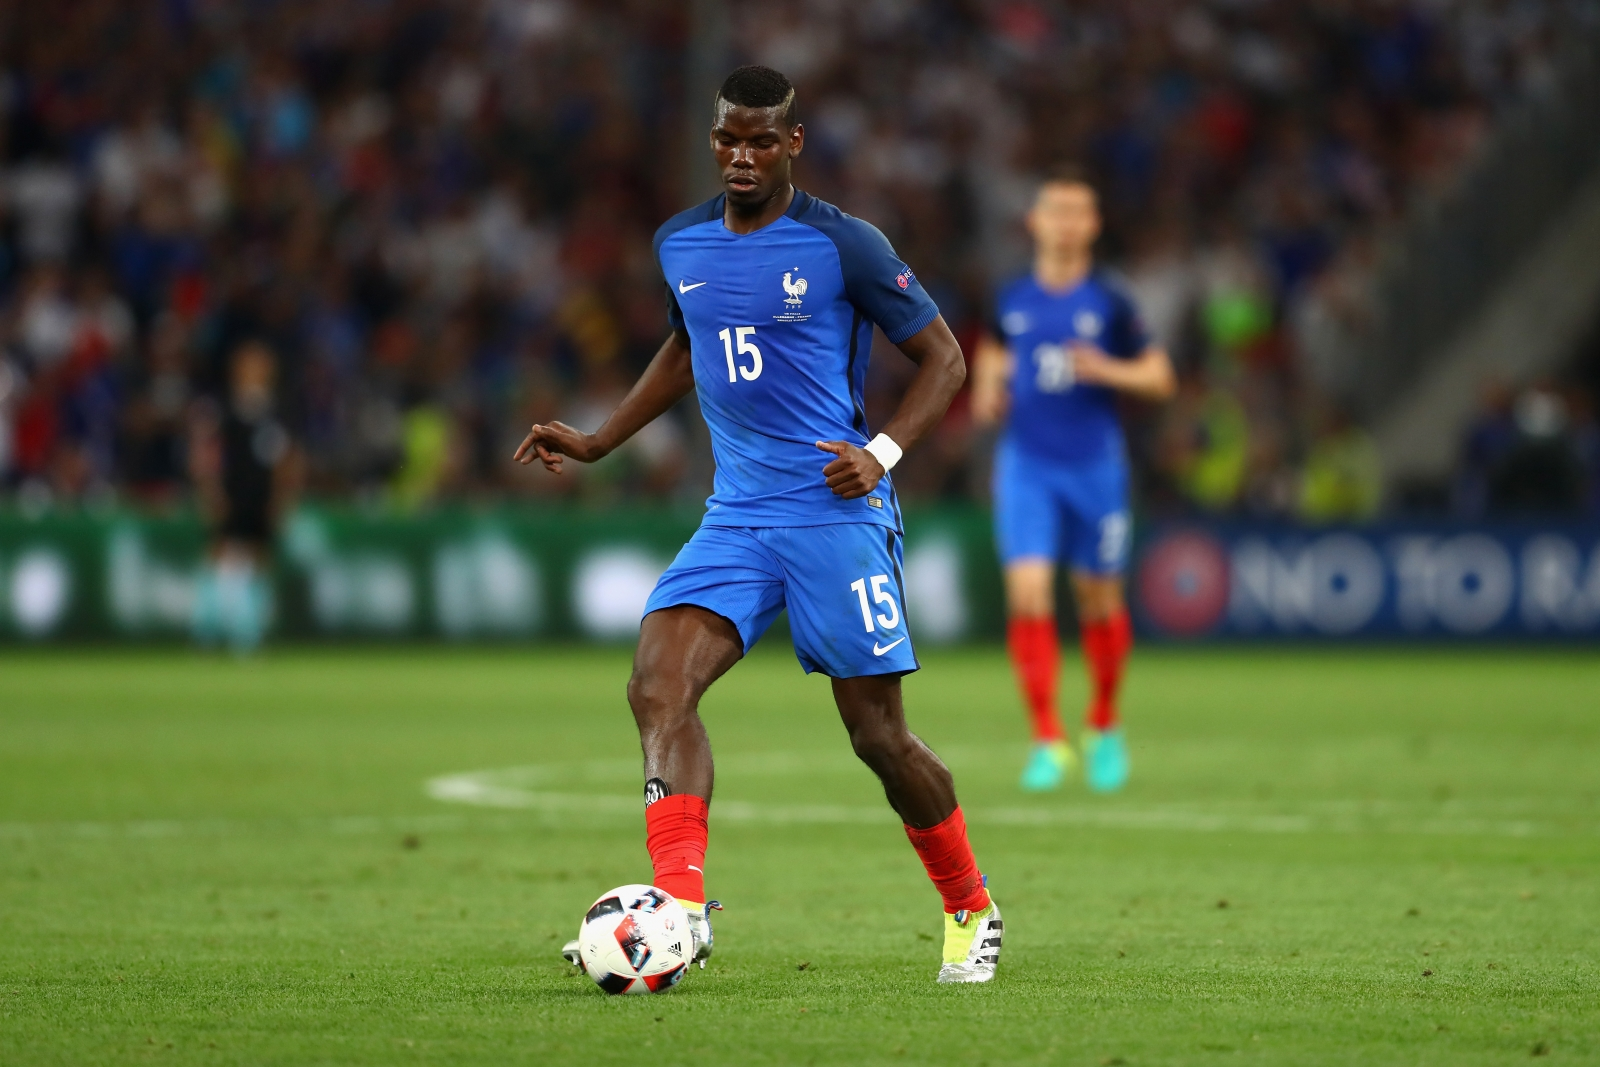 Paul Pogba to Manchester United: Juventus will fight to